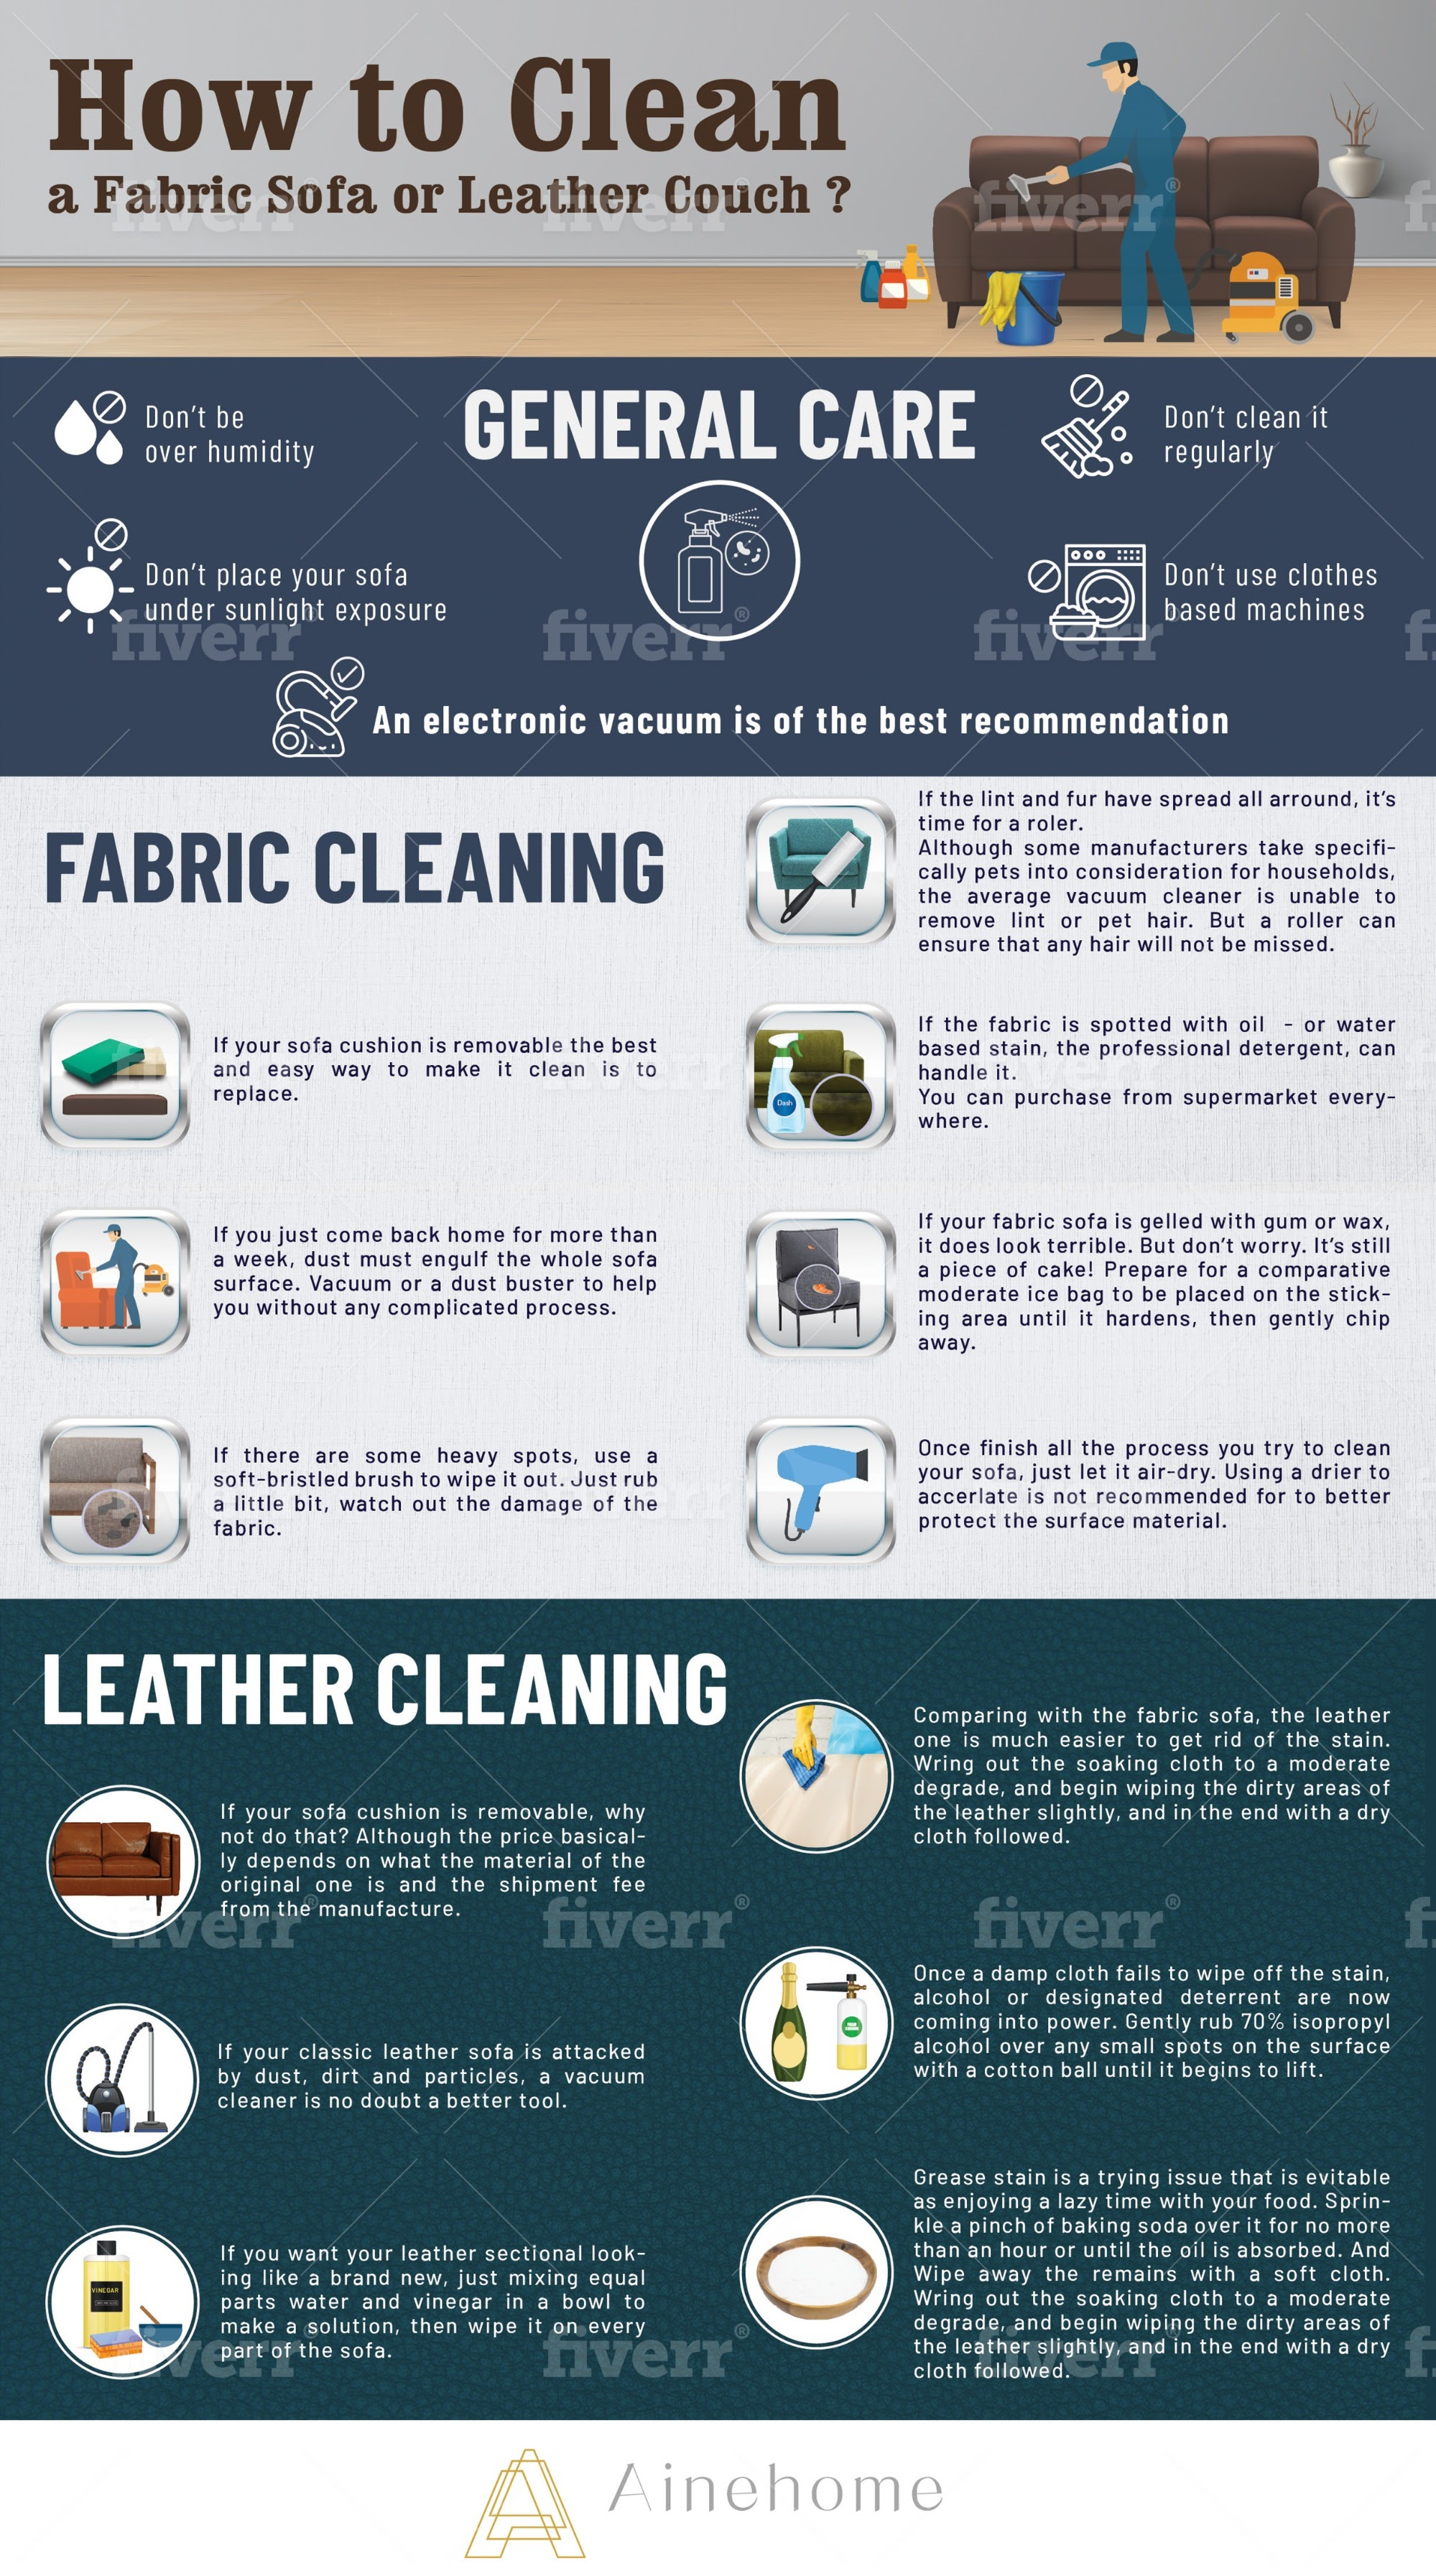 How to Clean a Fabric Sofa or Leather Couch #infographic